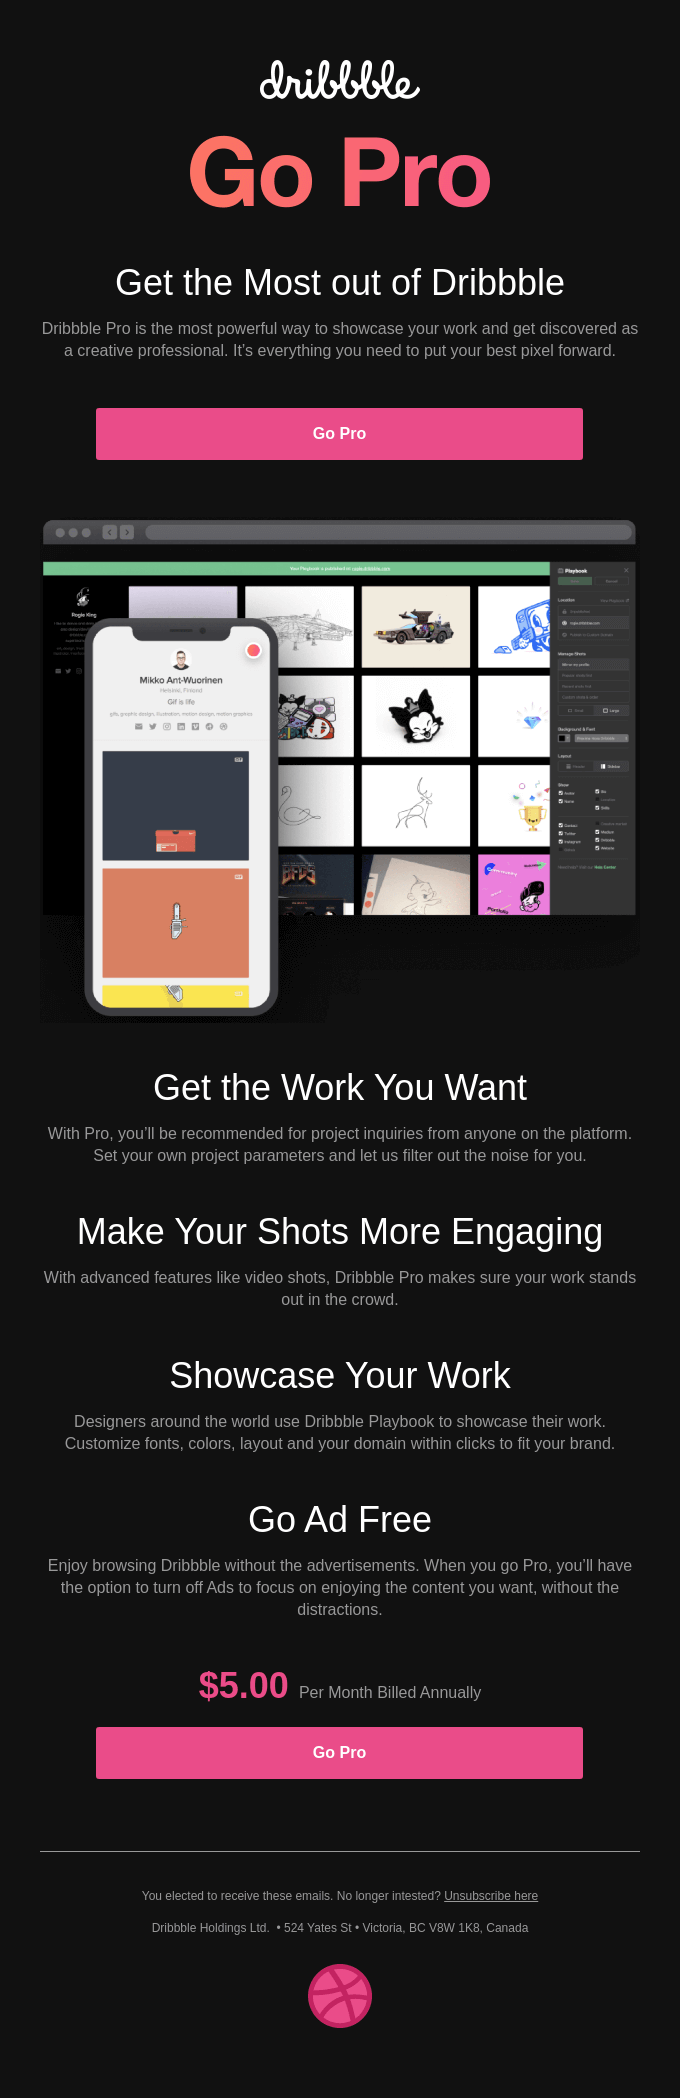 Get the most out of Dribbble